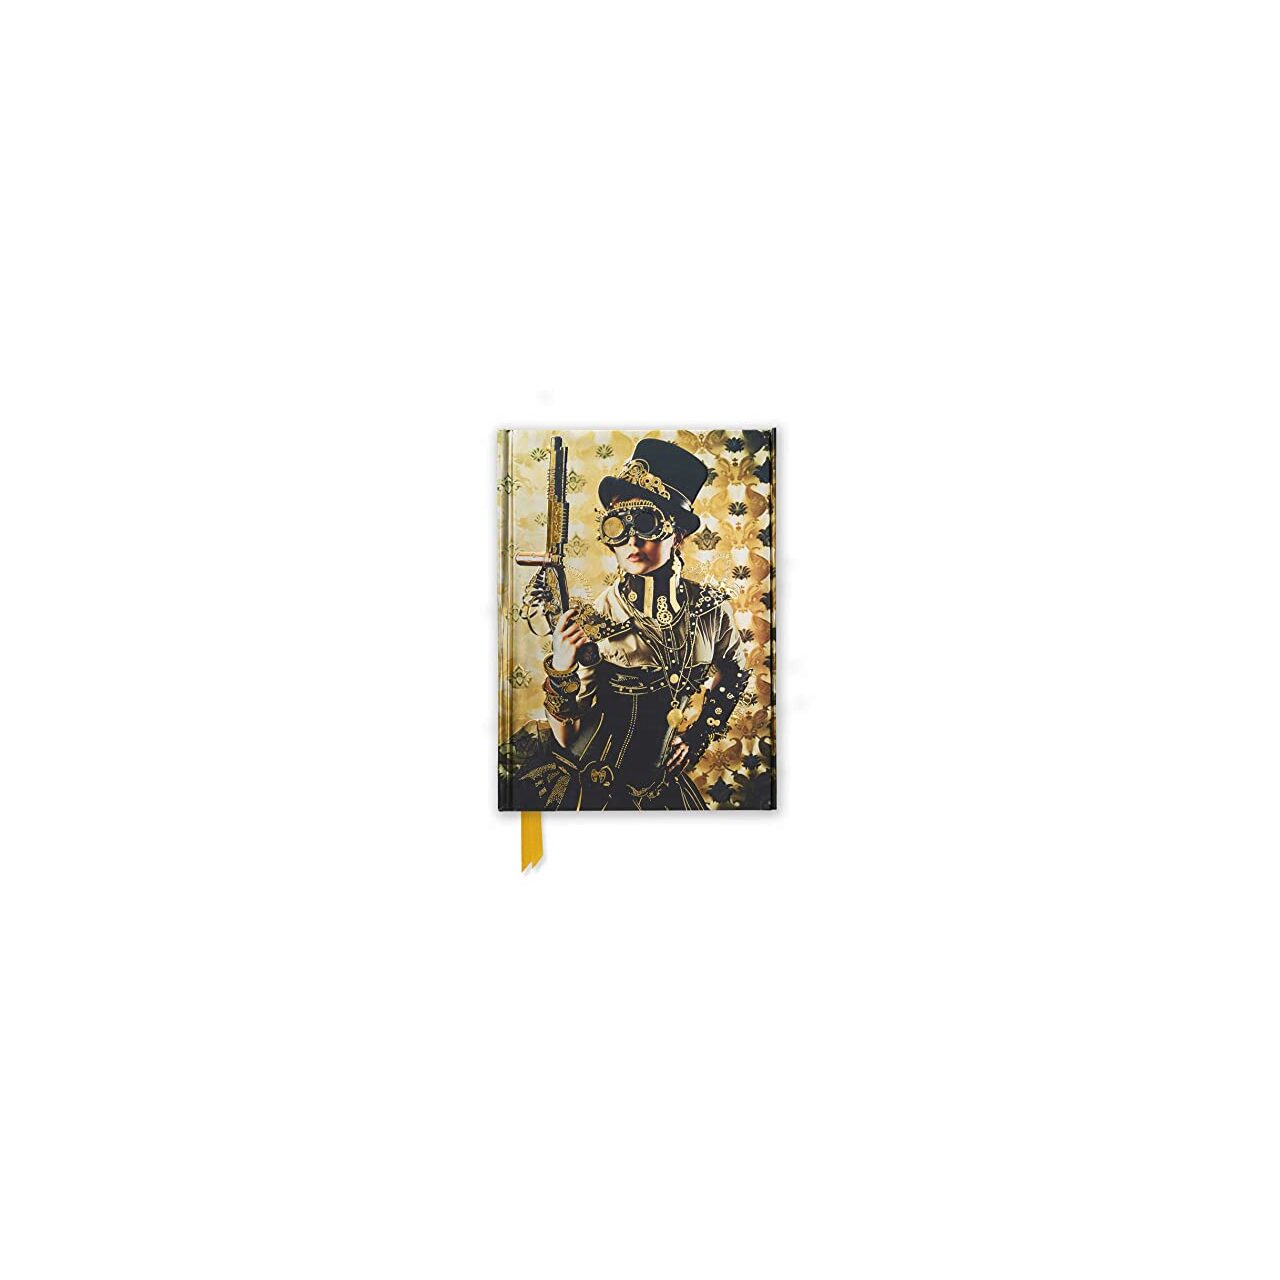 Steampunk Lady (Flame Tree Notebooks) imagine